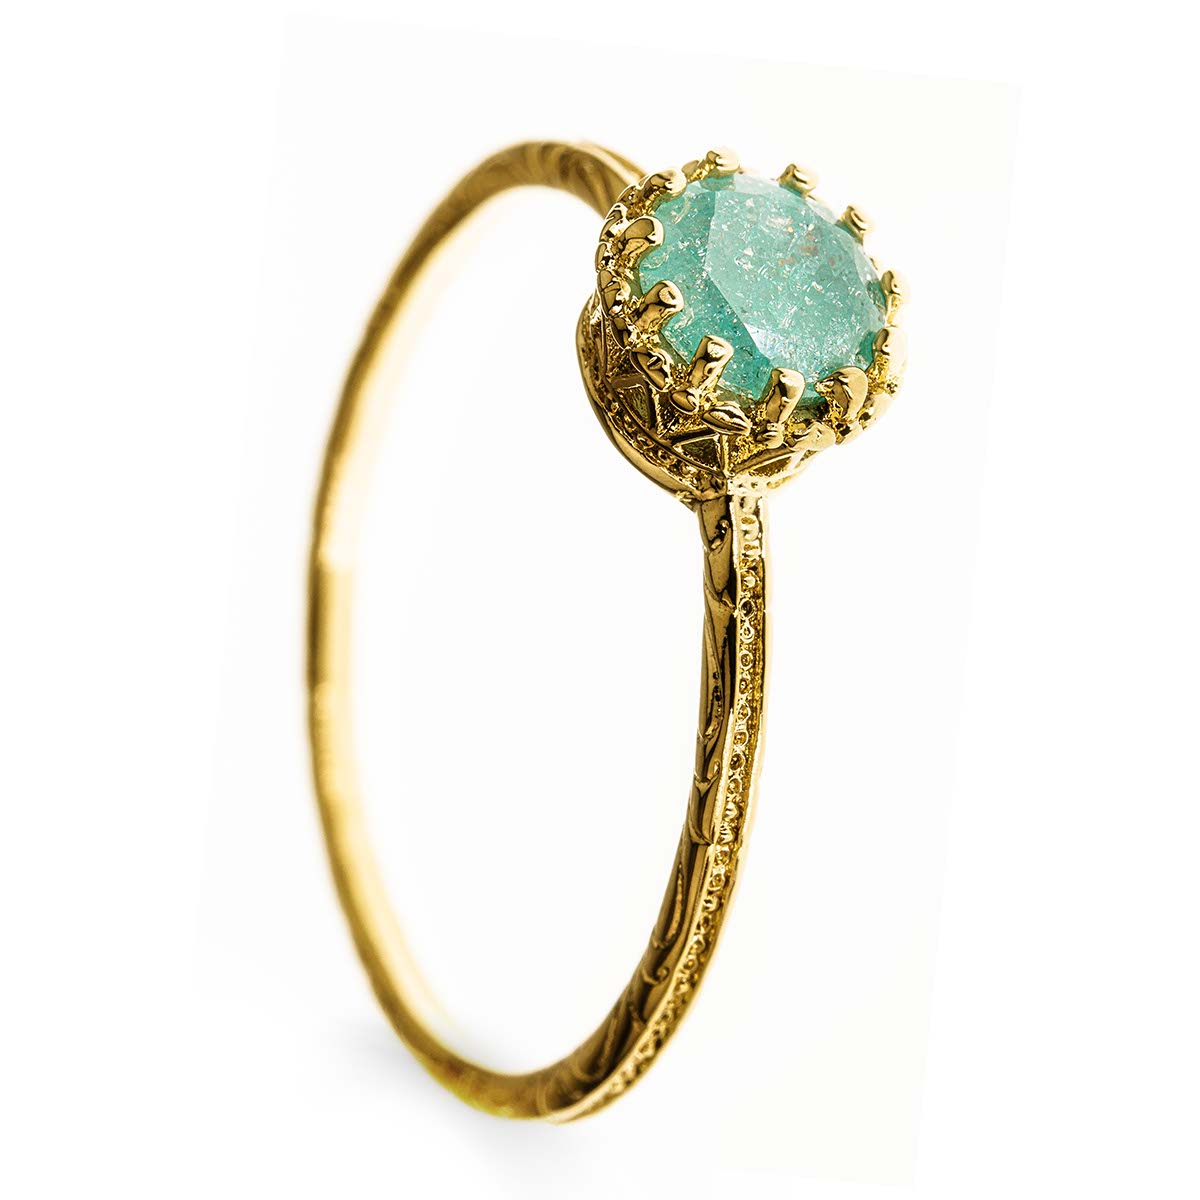 Gold Filled 14k Green Stone Ring